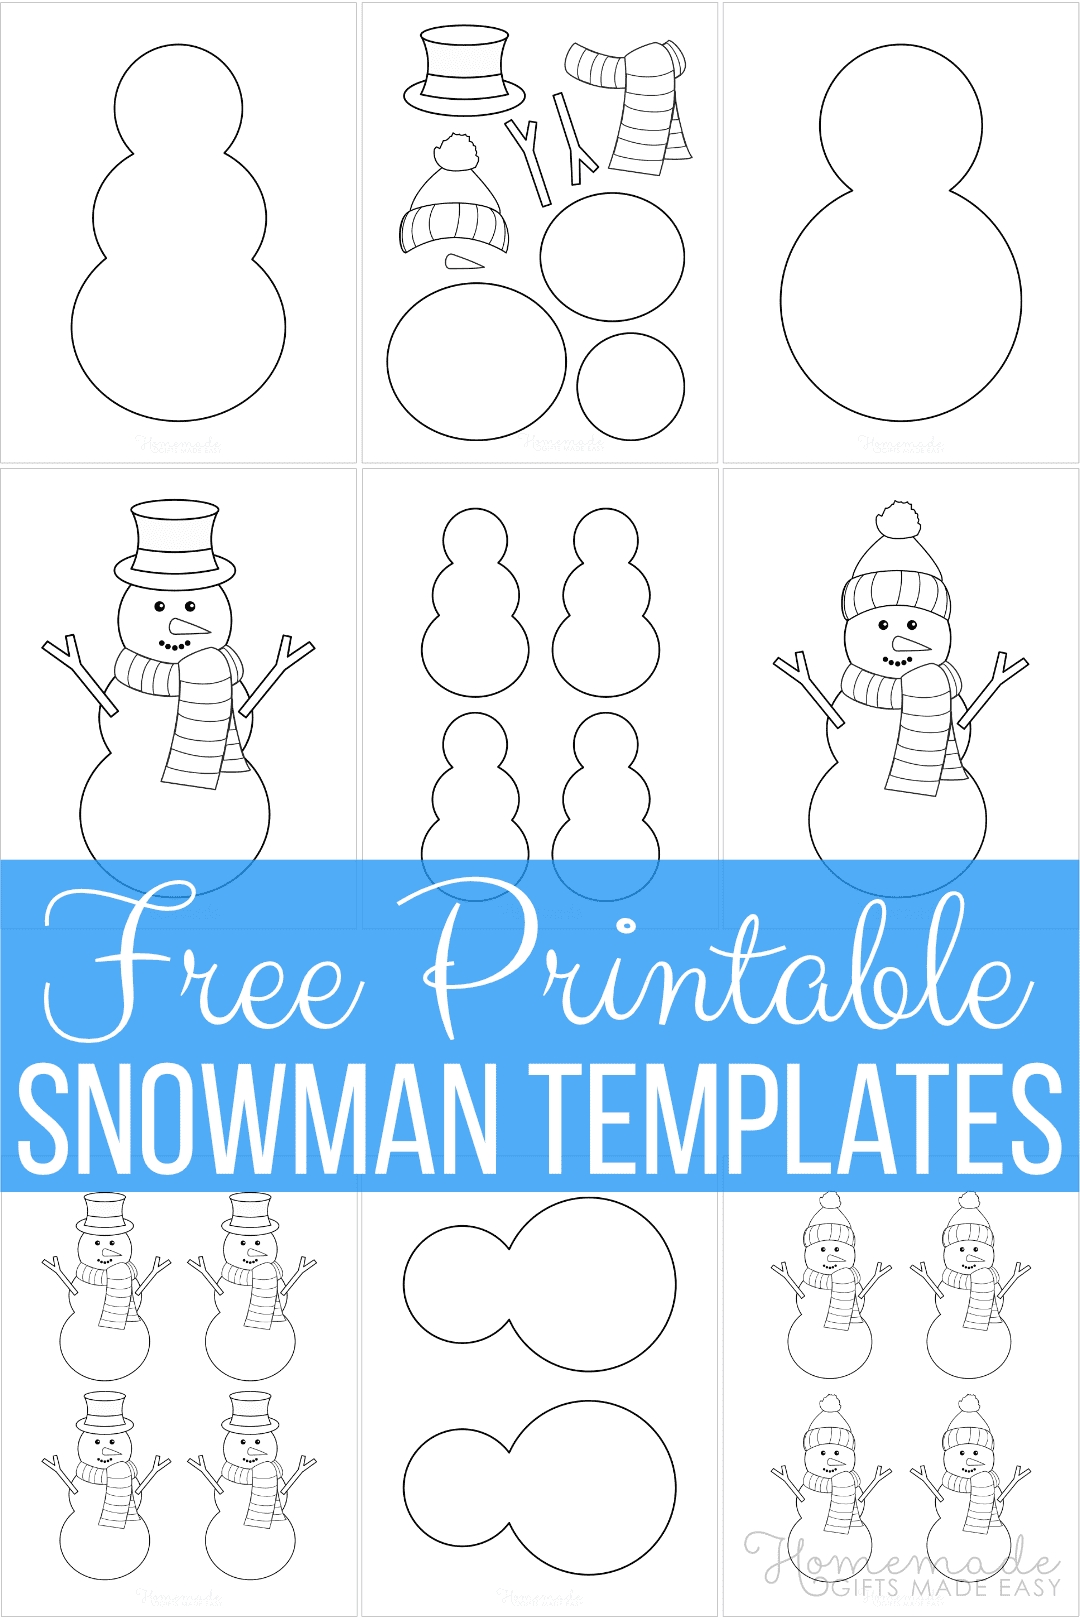 Free Printable Snowman Templates For Crafts